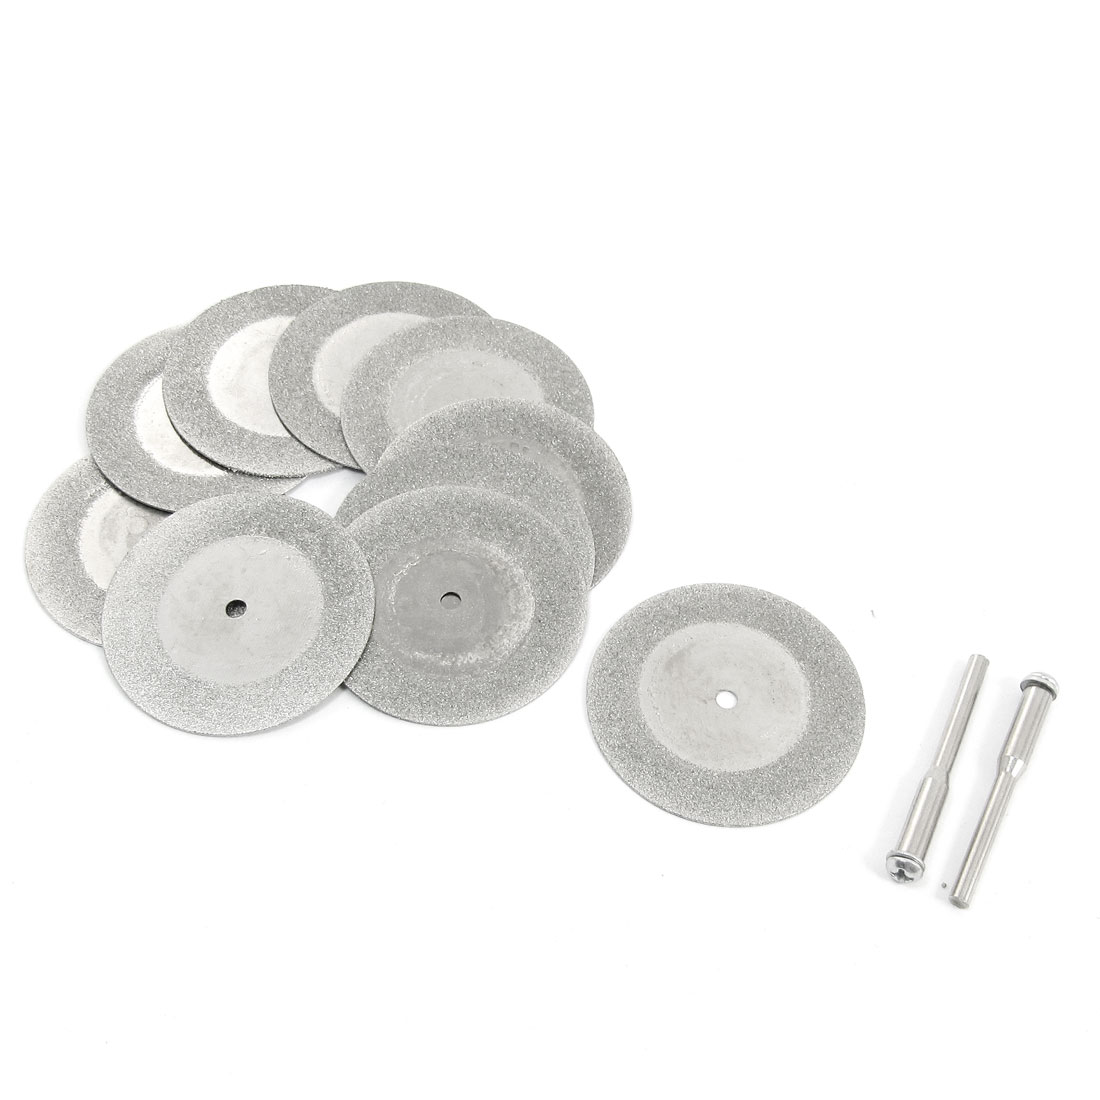 10pcs 40mm OD Abrasives Cutting Discs Diamond Grinding Wheel w Drill Bits